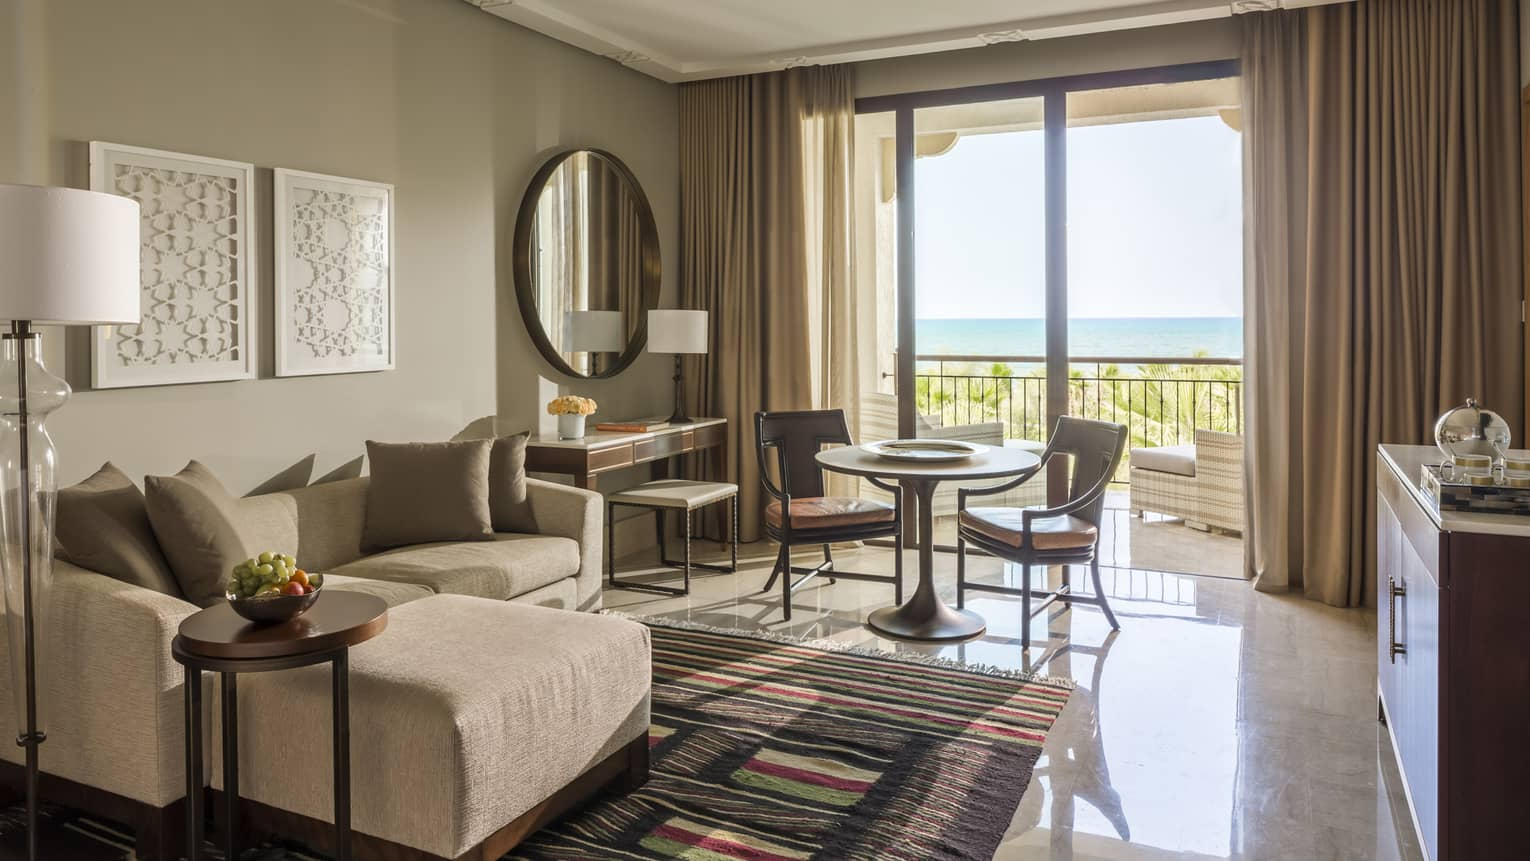 Deluxe Sea View hotel room with modular sofa, small table and chairs by sunny balcony doors